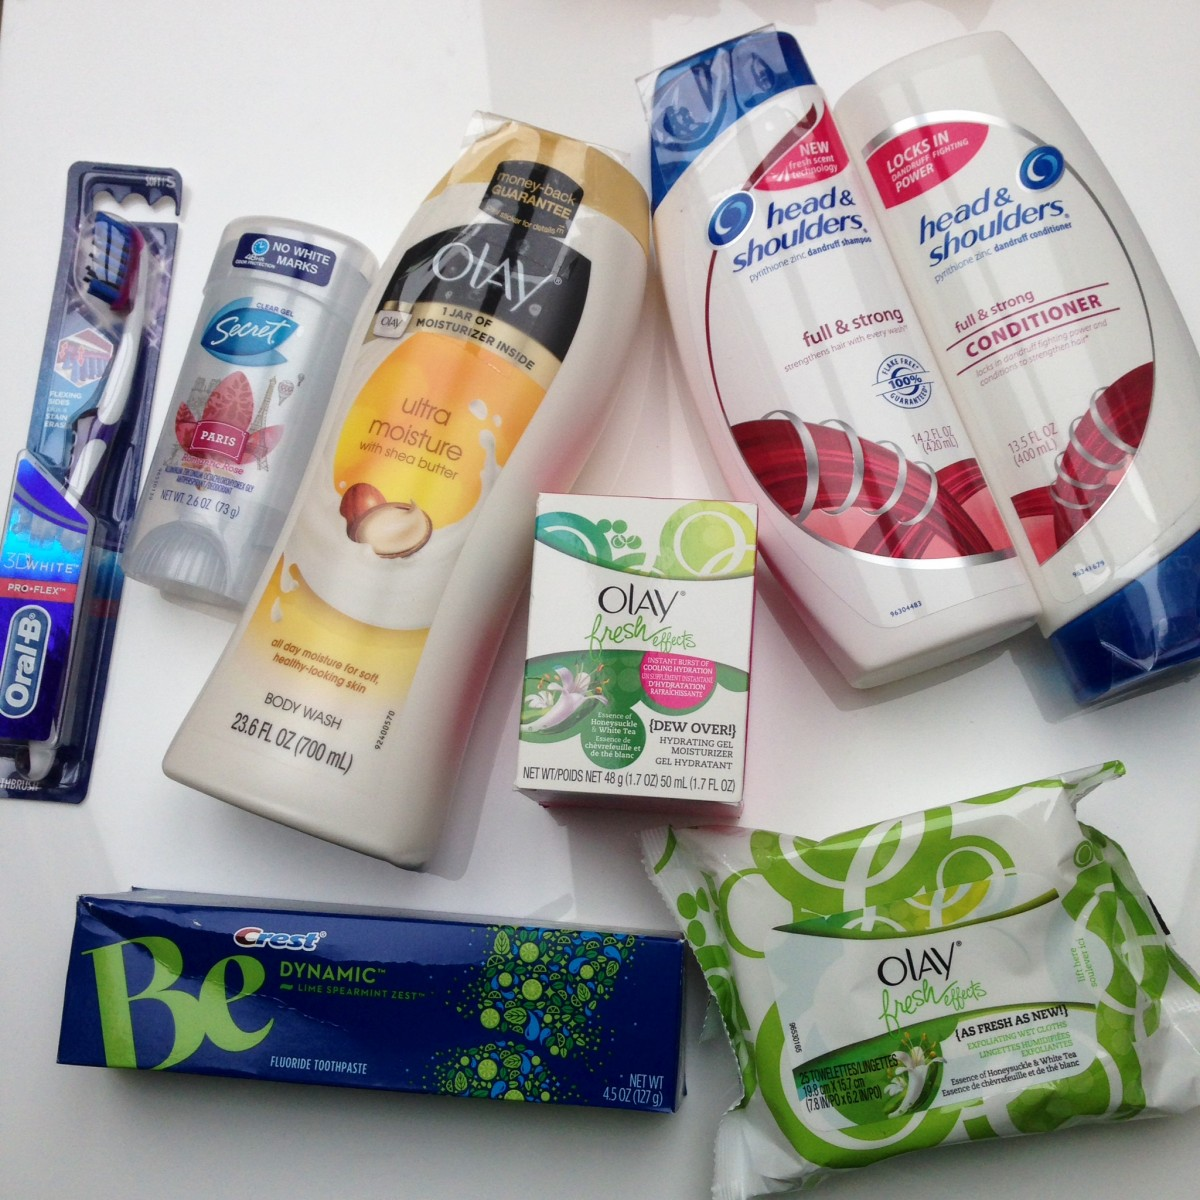 Walgreens P&G Beauty Giveaway + An Interview With Tim Gunn!